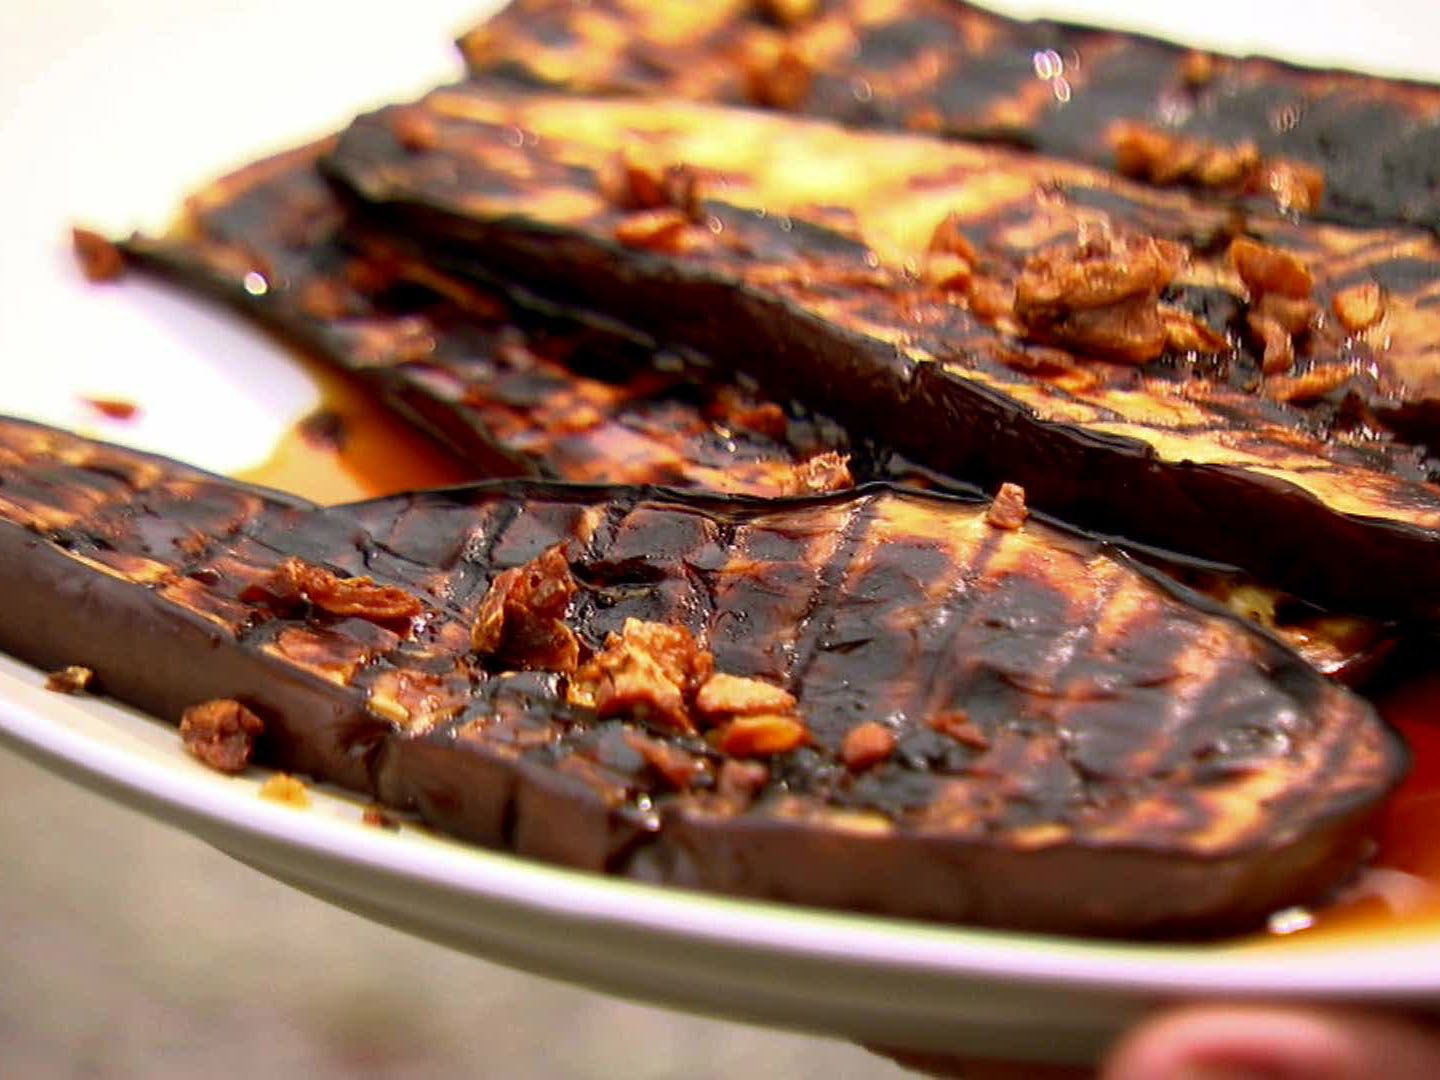 Grilled eggplant with sherry vinegar drizzle receta recetas de grilled eggplant with sherry vinegar drizzle forumfinder Choice Image